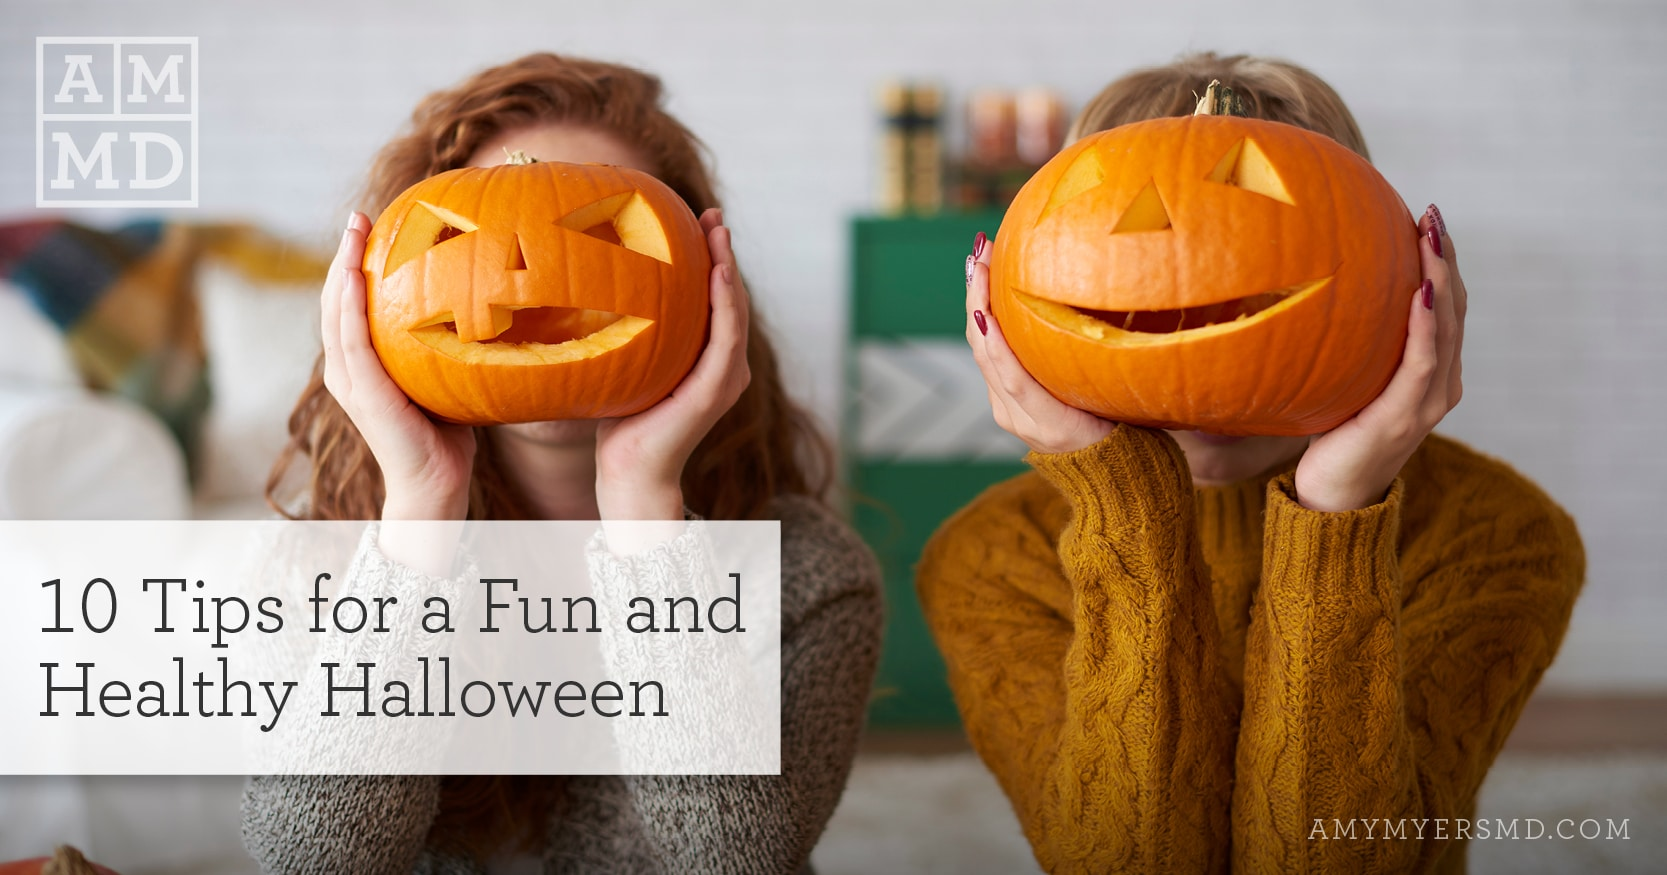 10 Tips for a Fun and Healthy Halloween - Two women holding Jack-o-lanterns - Featured Image - Amy Myers MD